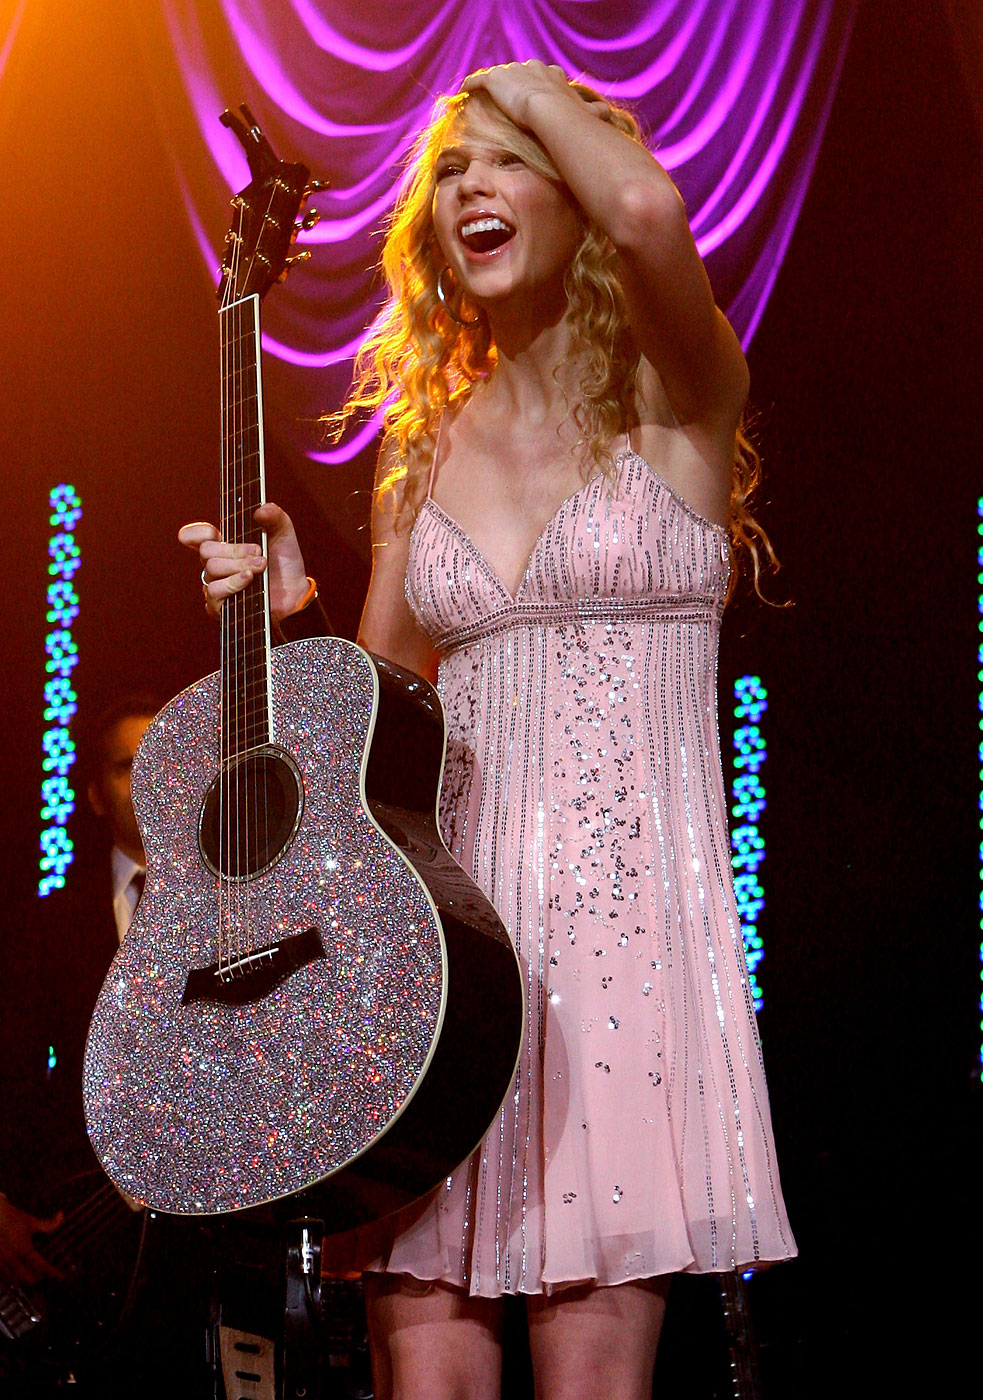 Taylor Swift performs during the Academy of Country Music New Artists' Party for a Cause show at the MGM Grand Hotel/Casino in Las Vegas, Nevada in 2008.